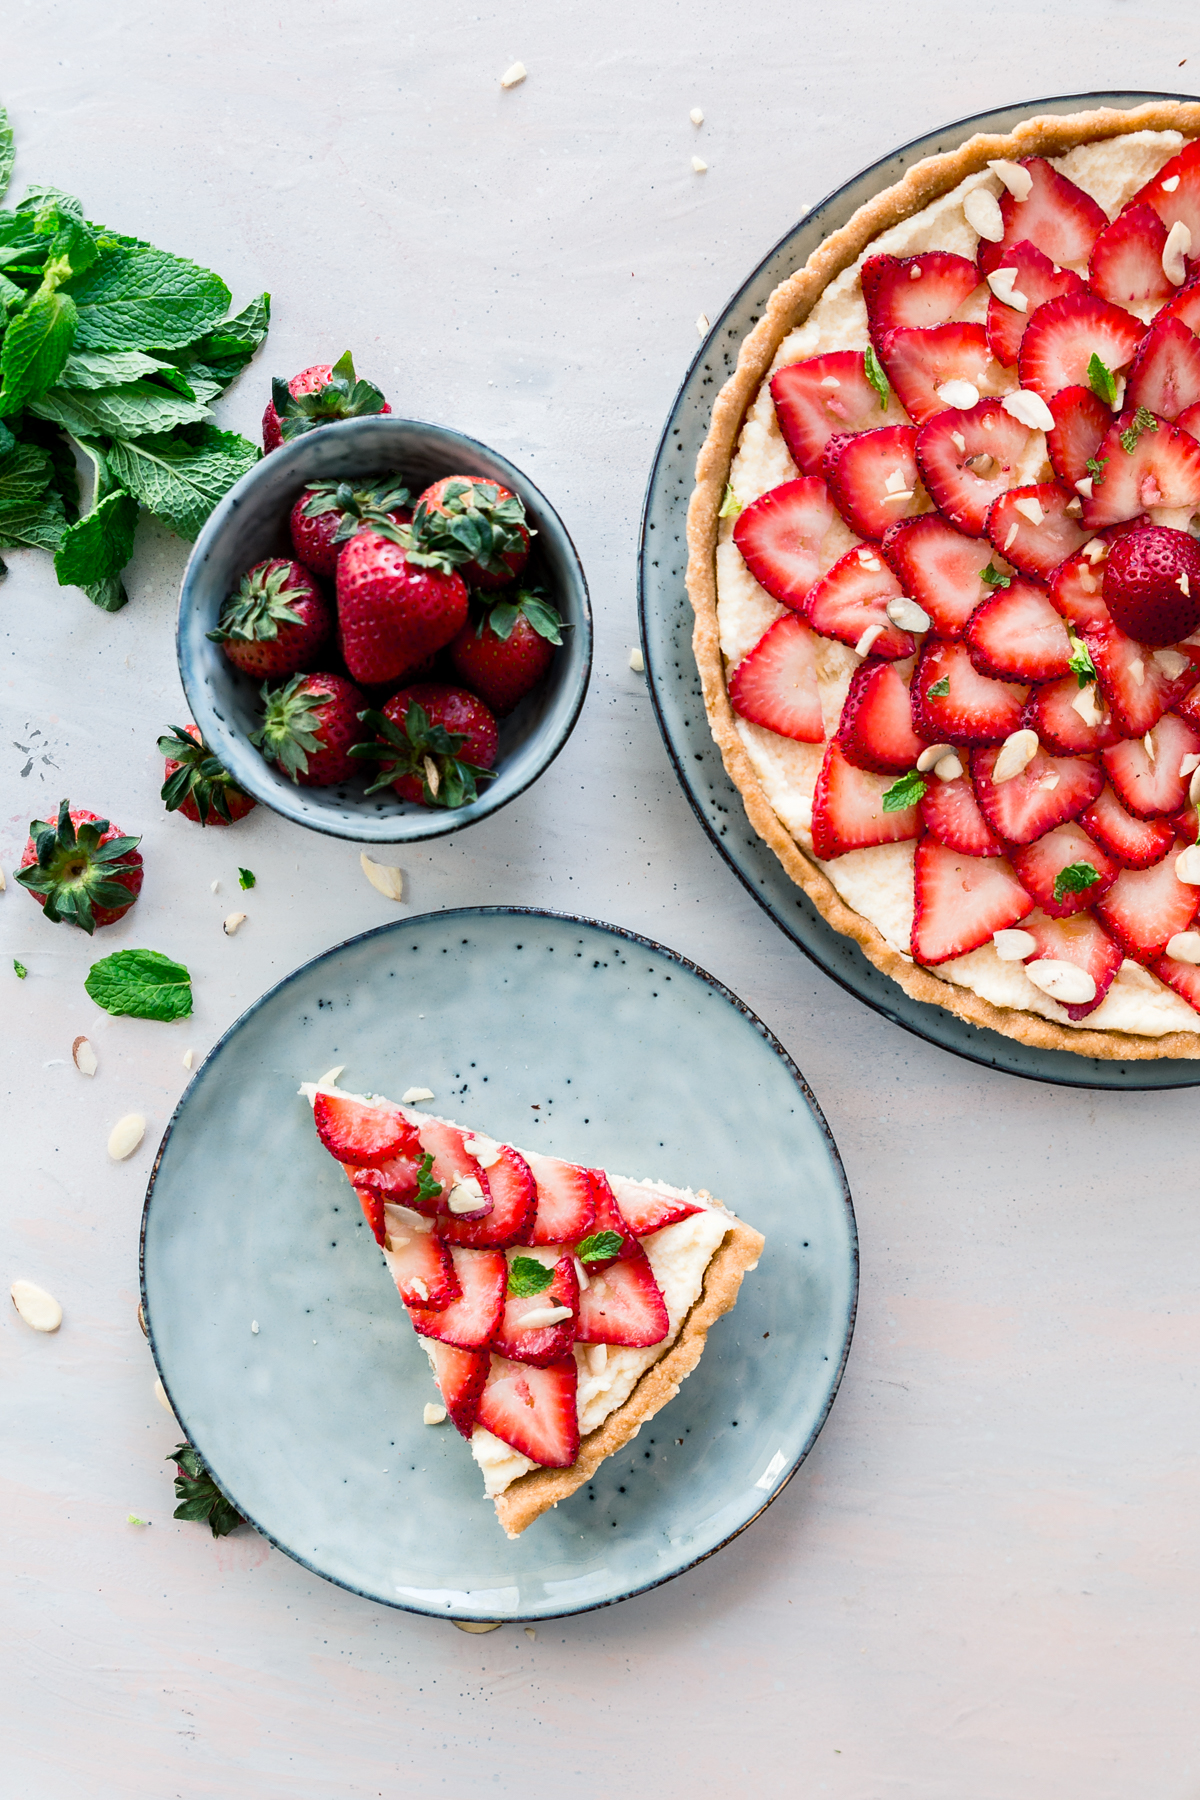 No Bake Strawberry Mascaropone Tart made with fresh fruit and mascarpone cheese. Perfect for mother's day or any occasion.